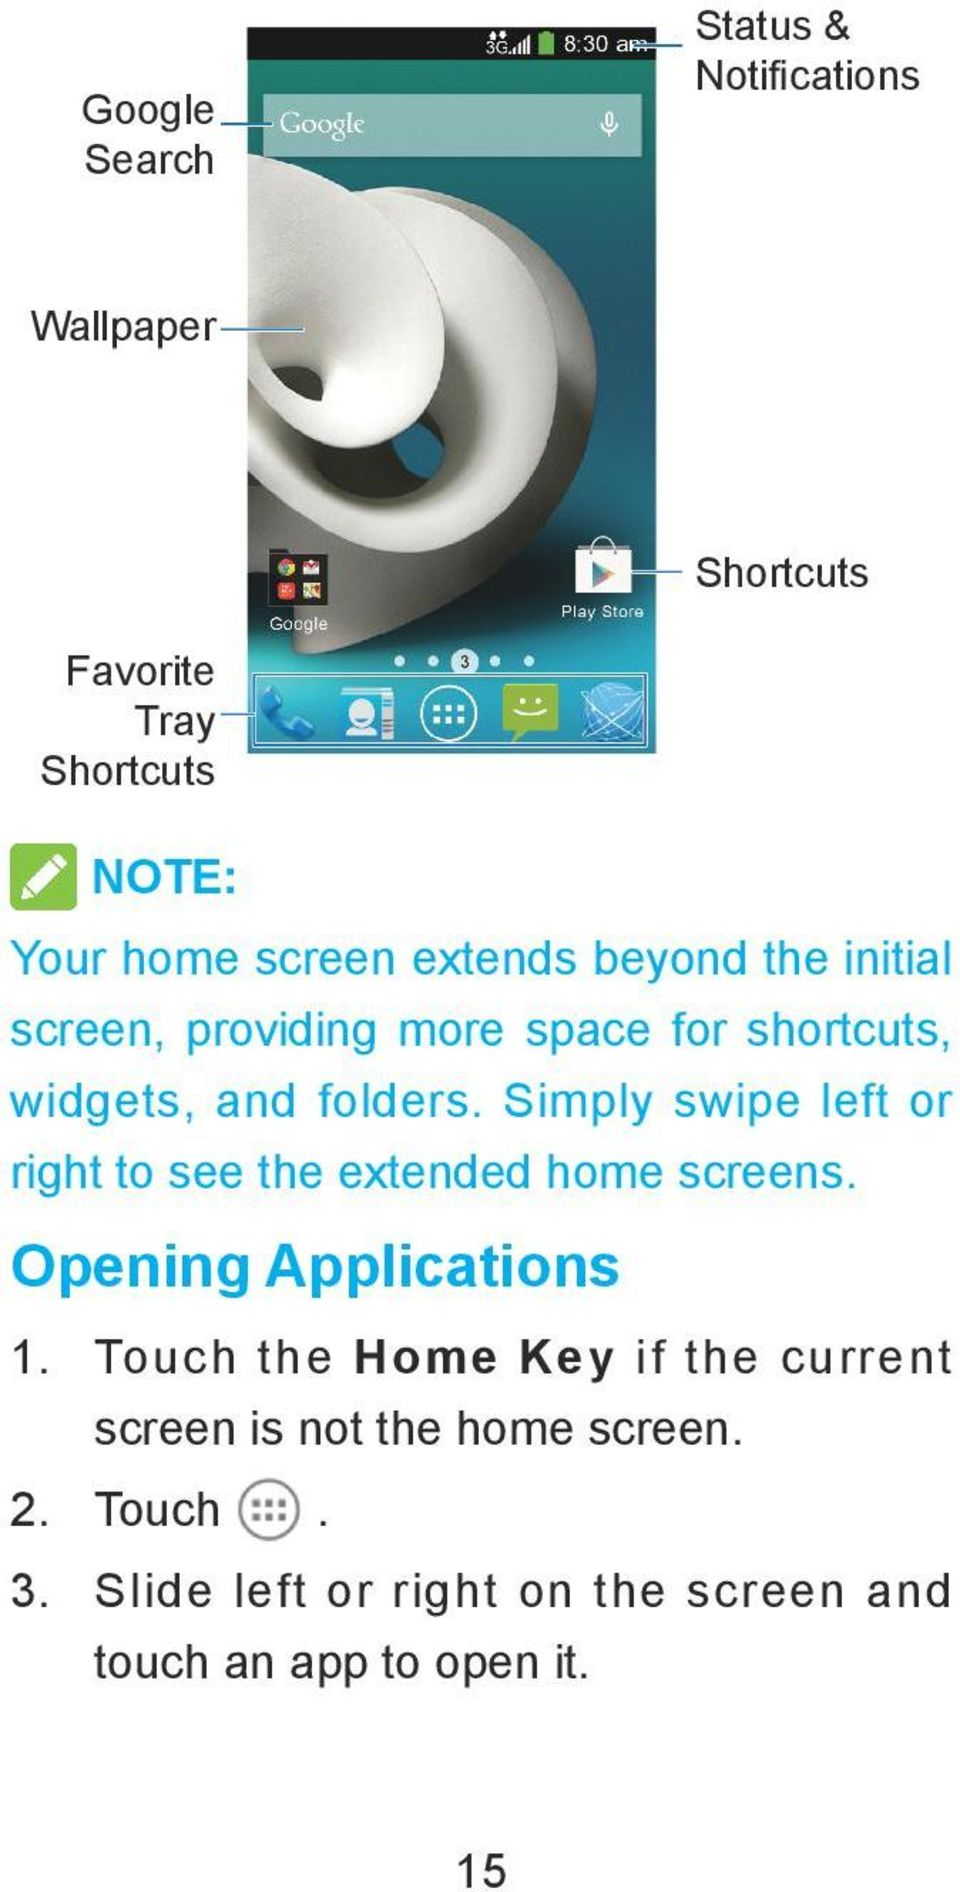 Simply swipe left or right to see the extended home screens. Opening Applications 1.